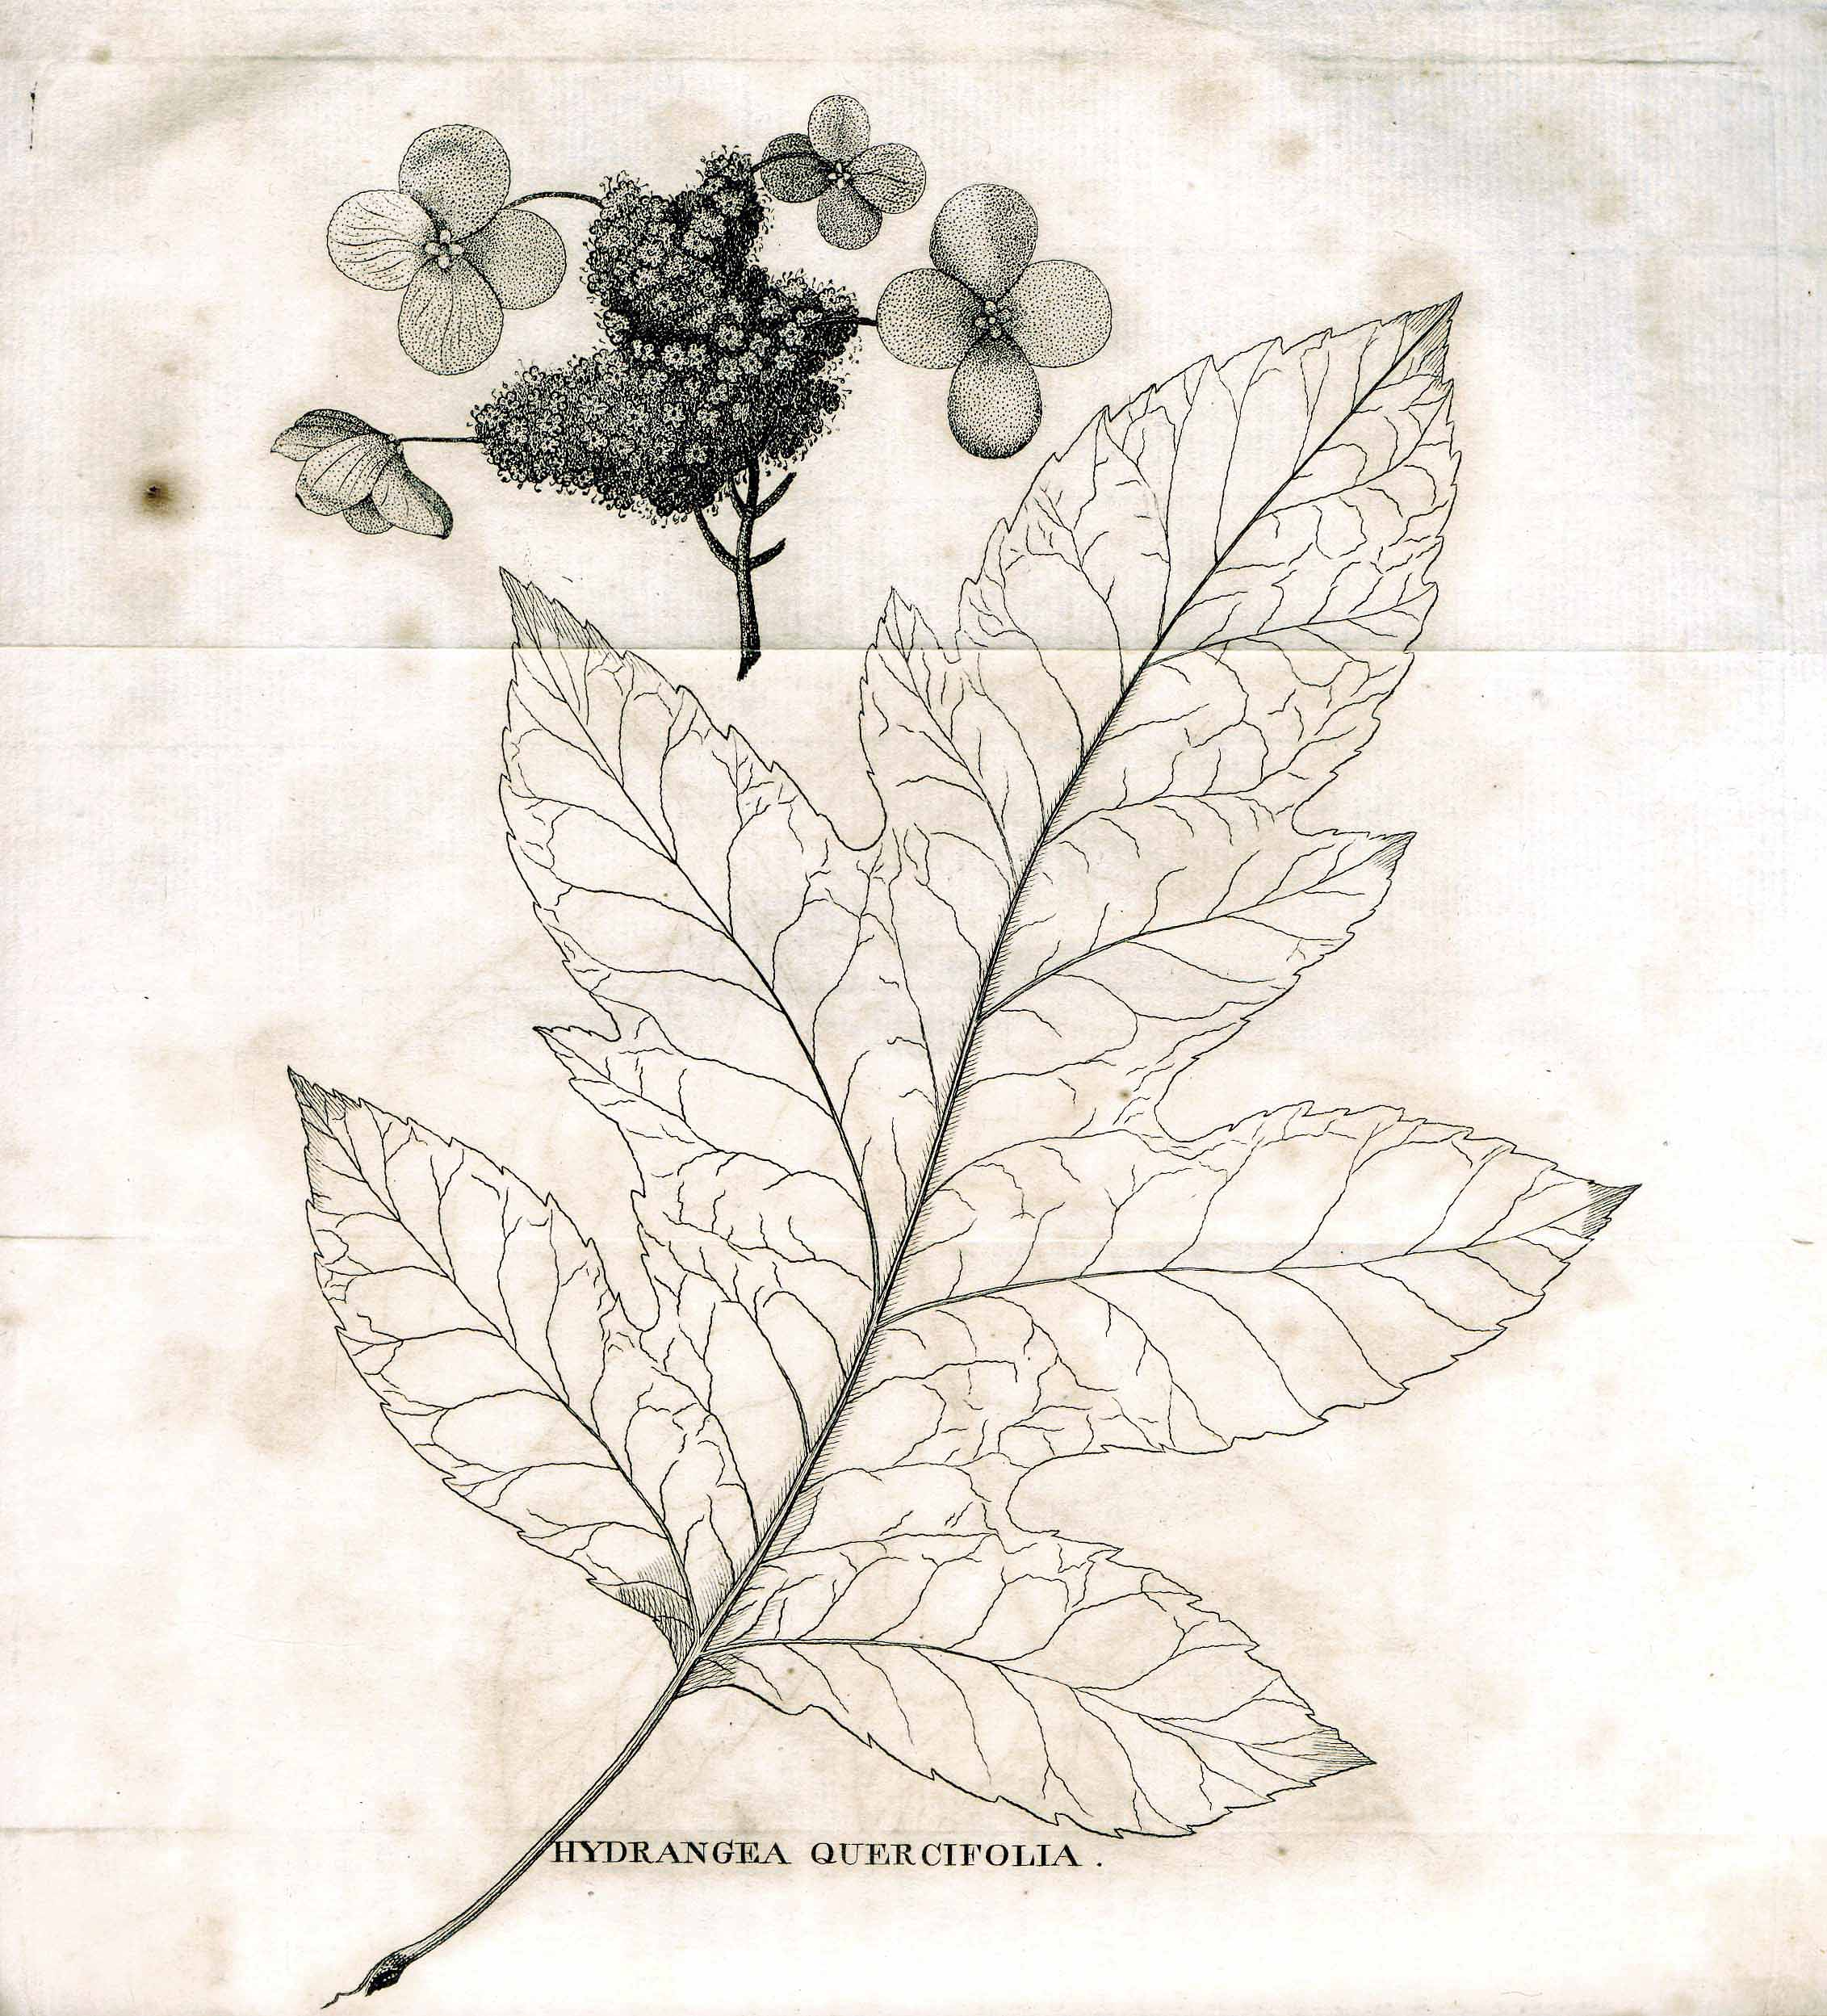 William Bartram's illustration of  Hydrangea quercifolia, engraved for the first edition of  Travels, Philadelphia: 1791. Image from the collections of the John Bartram Association.